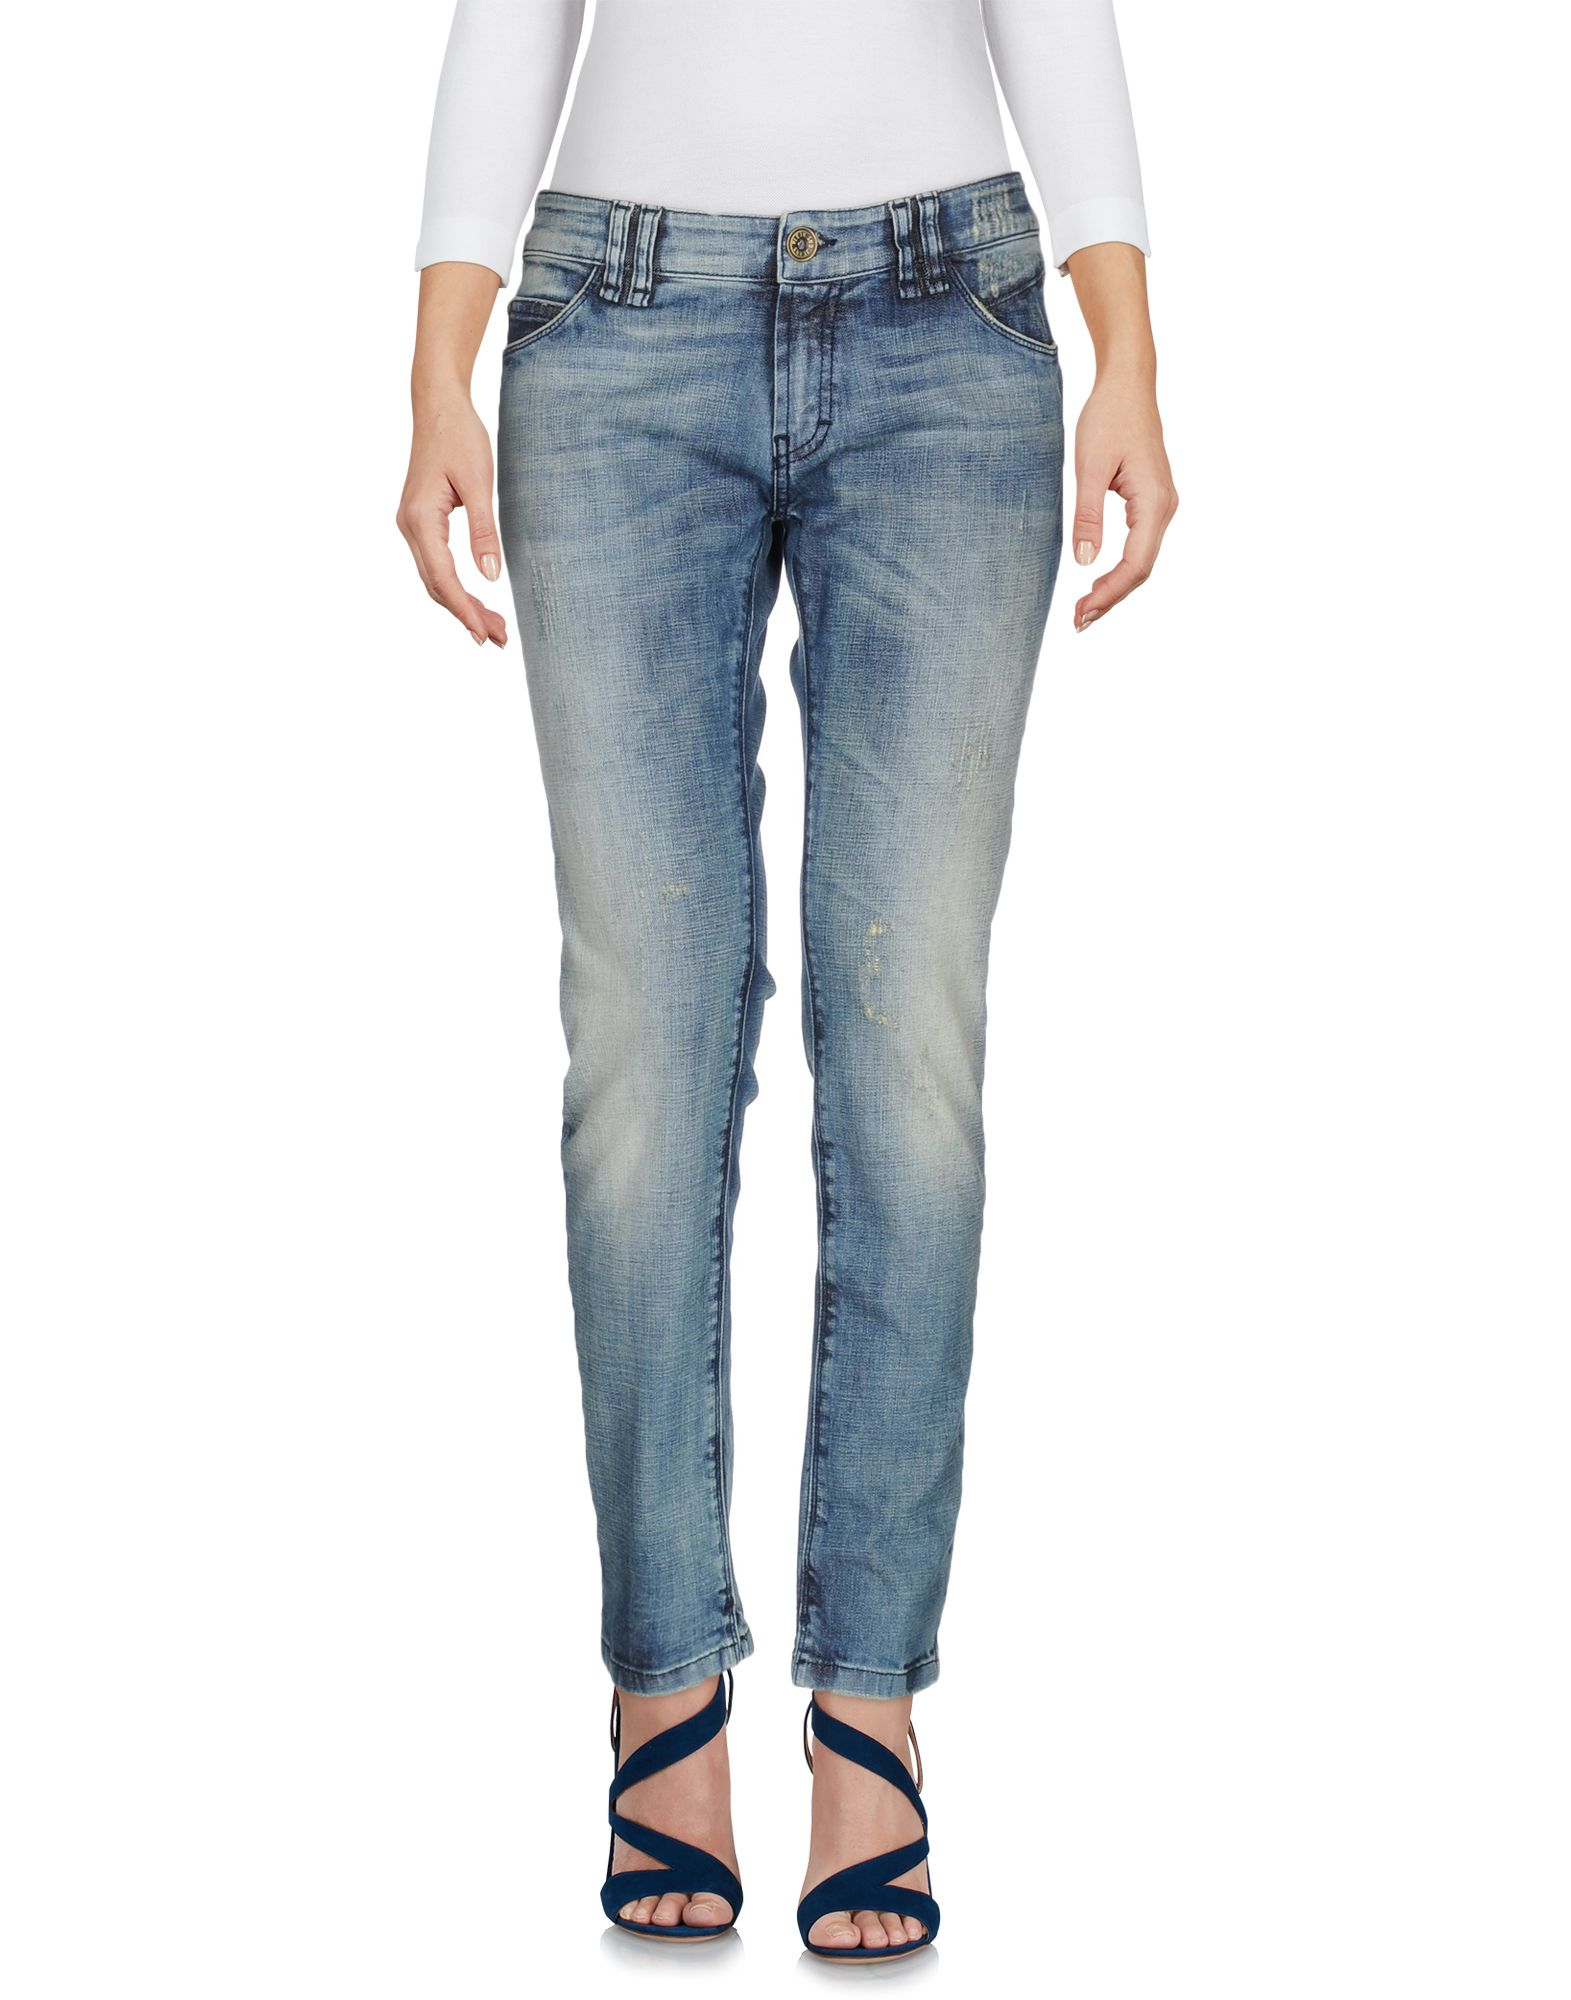 Plein Sud Jeanius Jeans Shop At Ebates